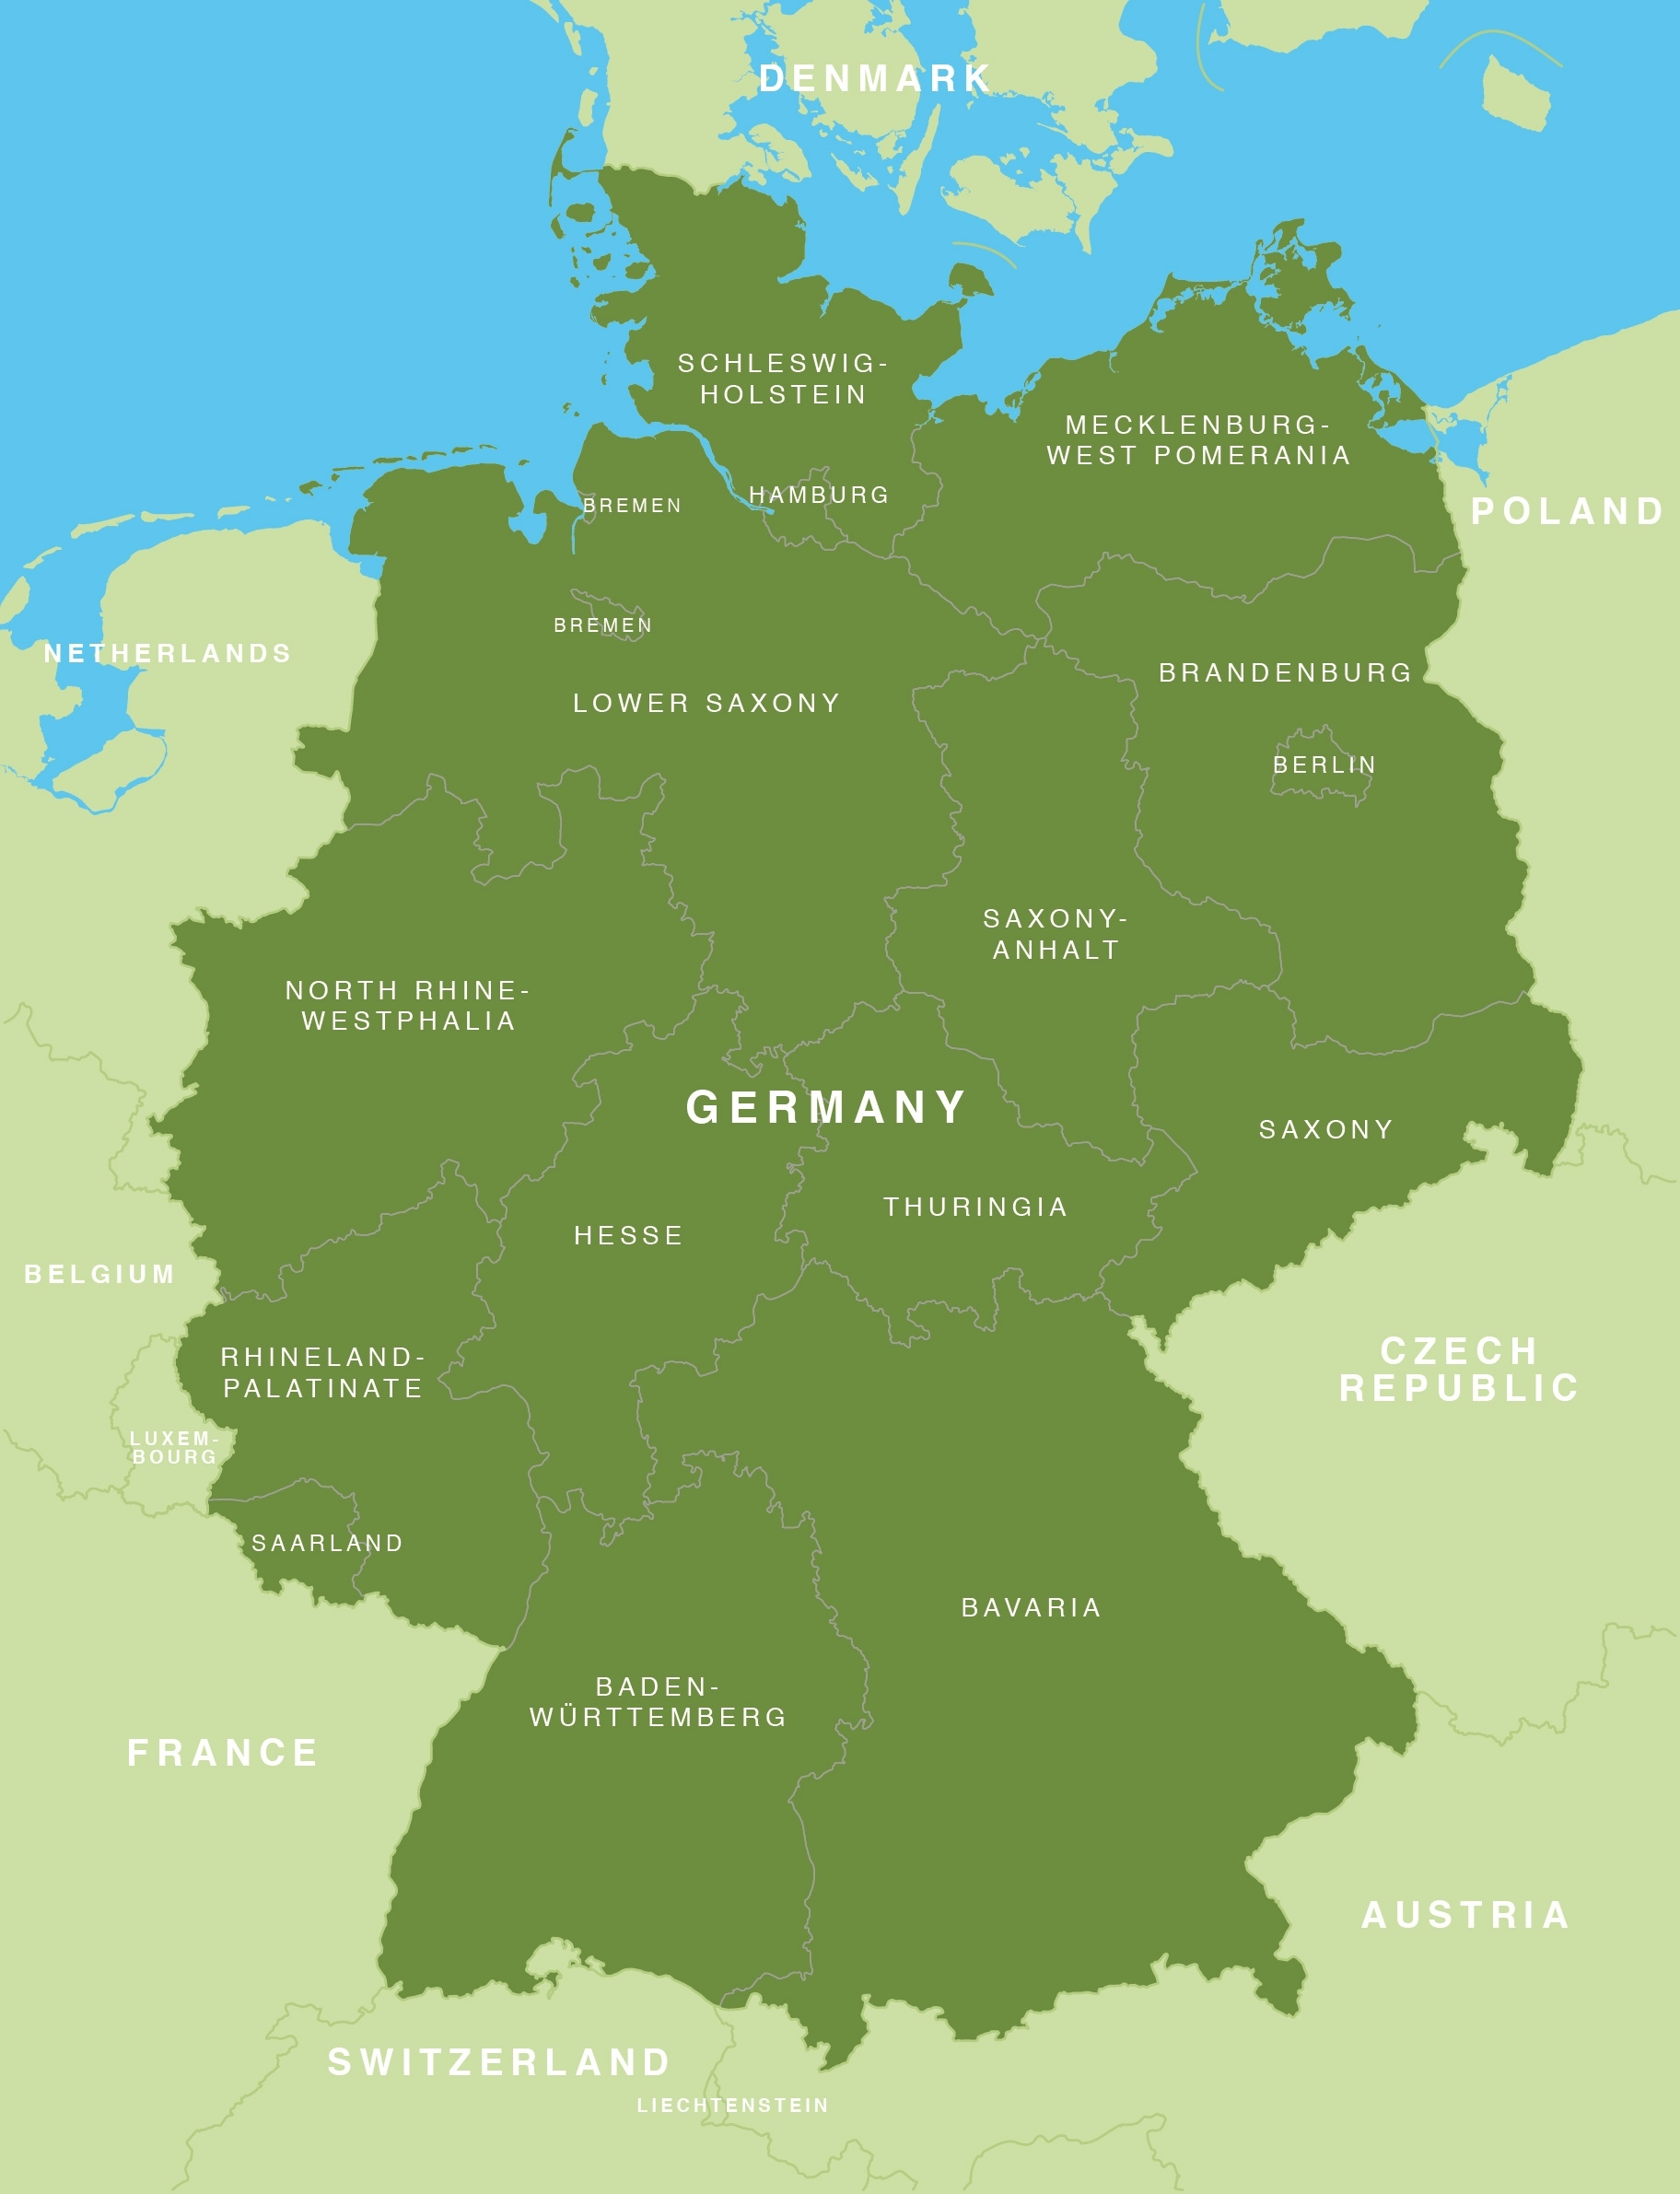 Map Of Germany - German States / Bundesländer - Maproom with regard to Germany Map By States